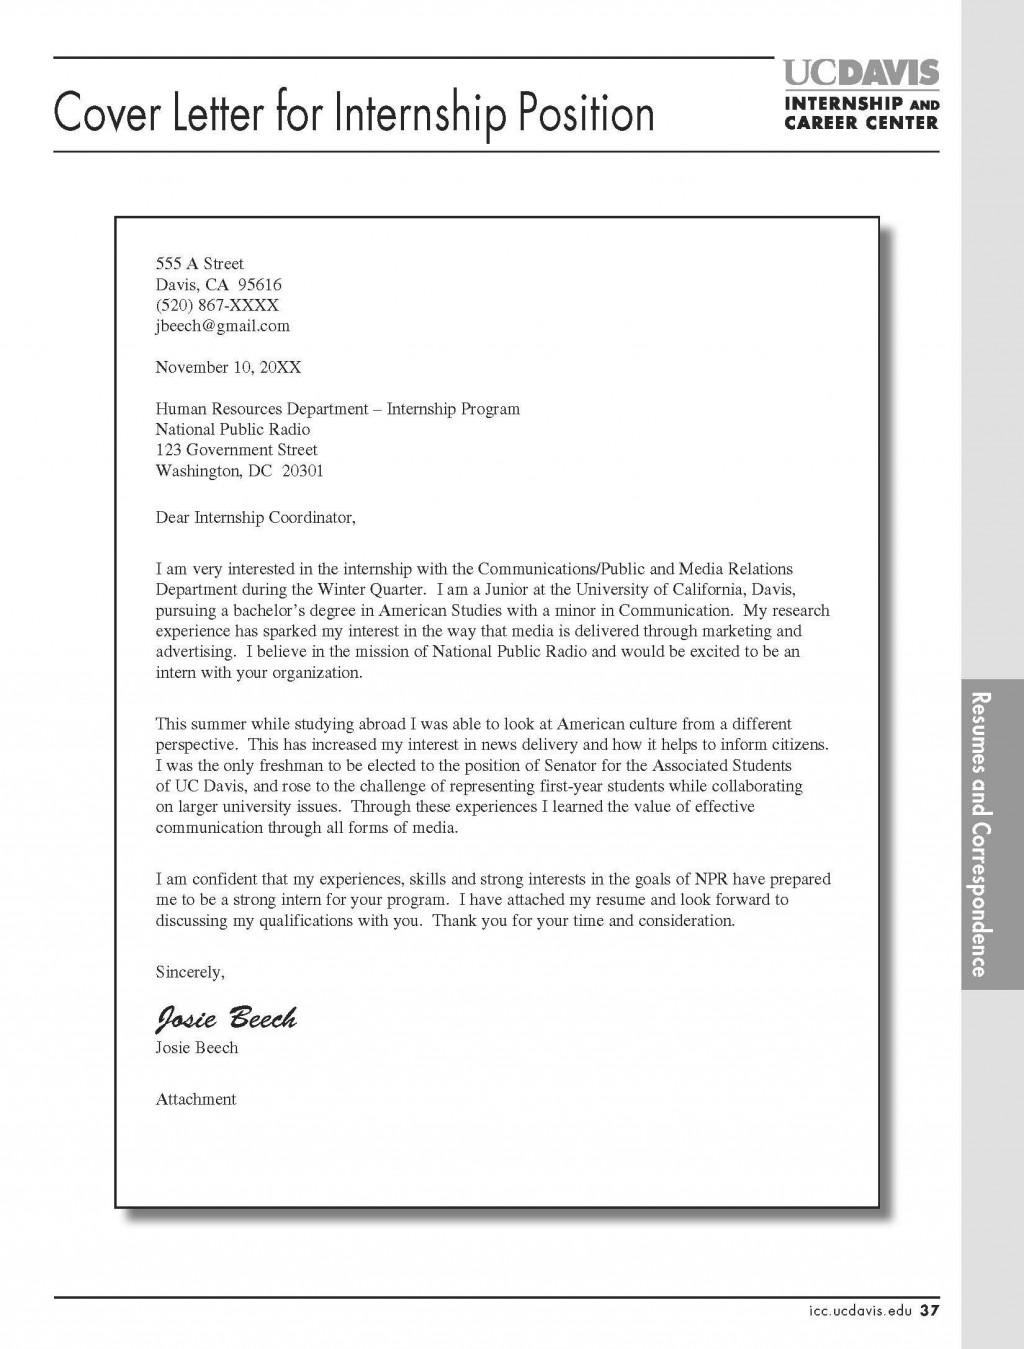 007 Archaicawful Cover Letter For Internship Template Highest Quality  Free Engineering Example SummerLarge